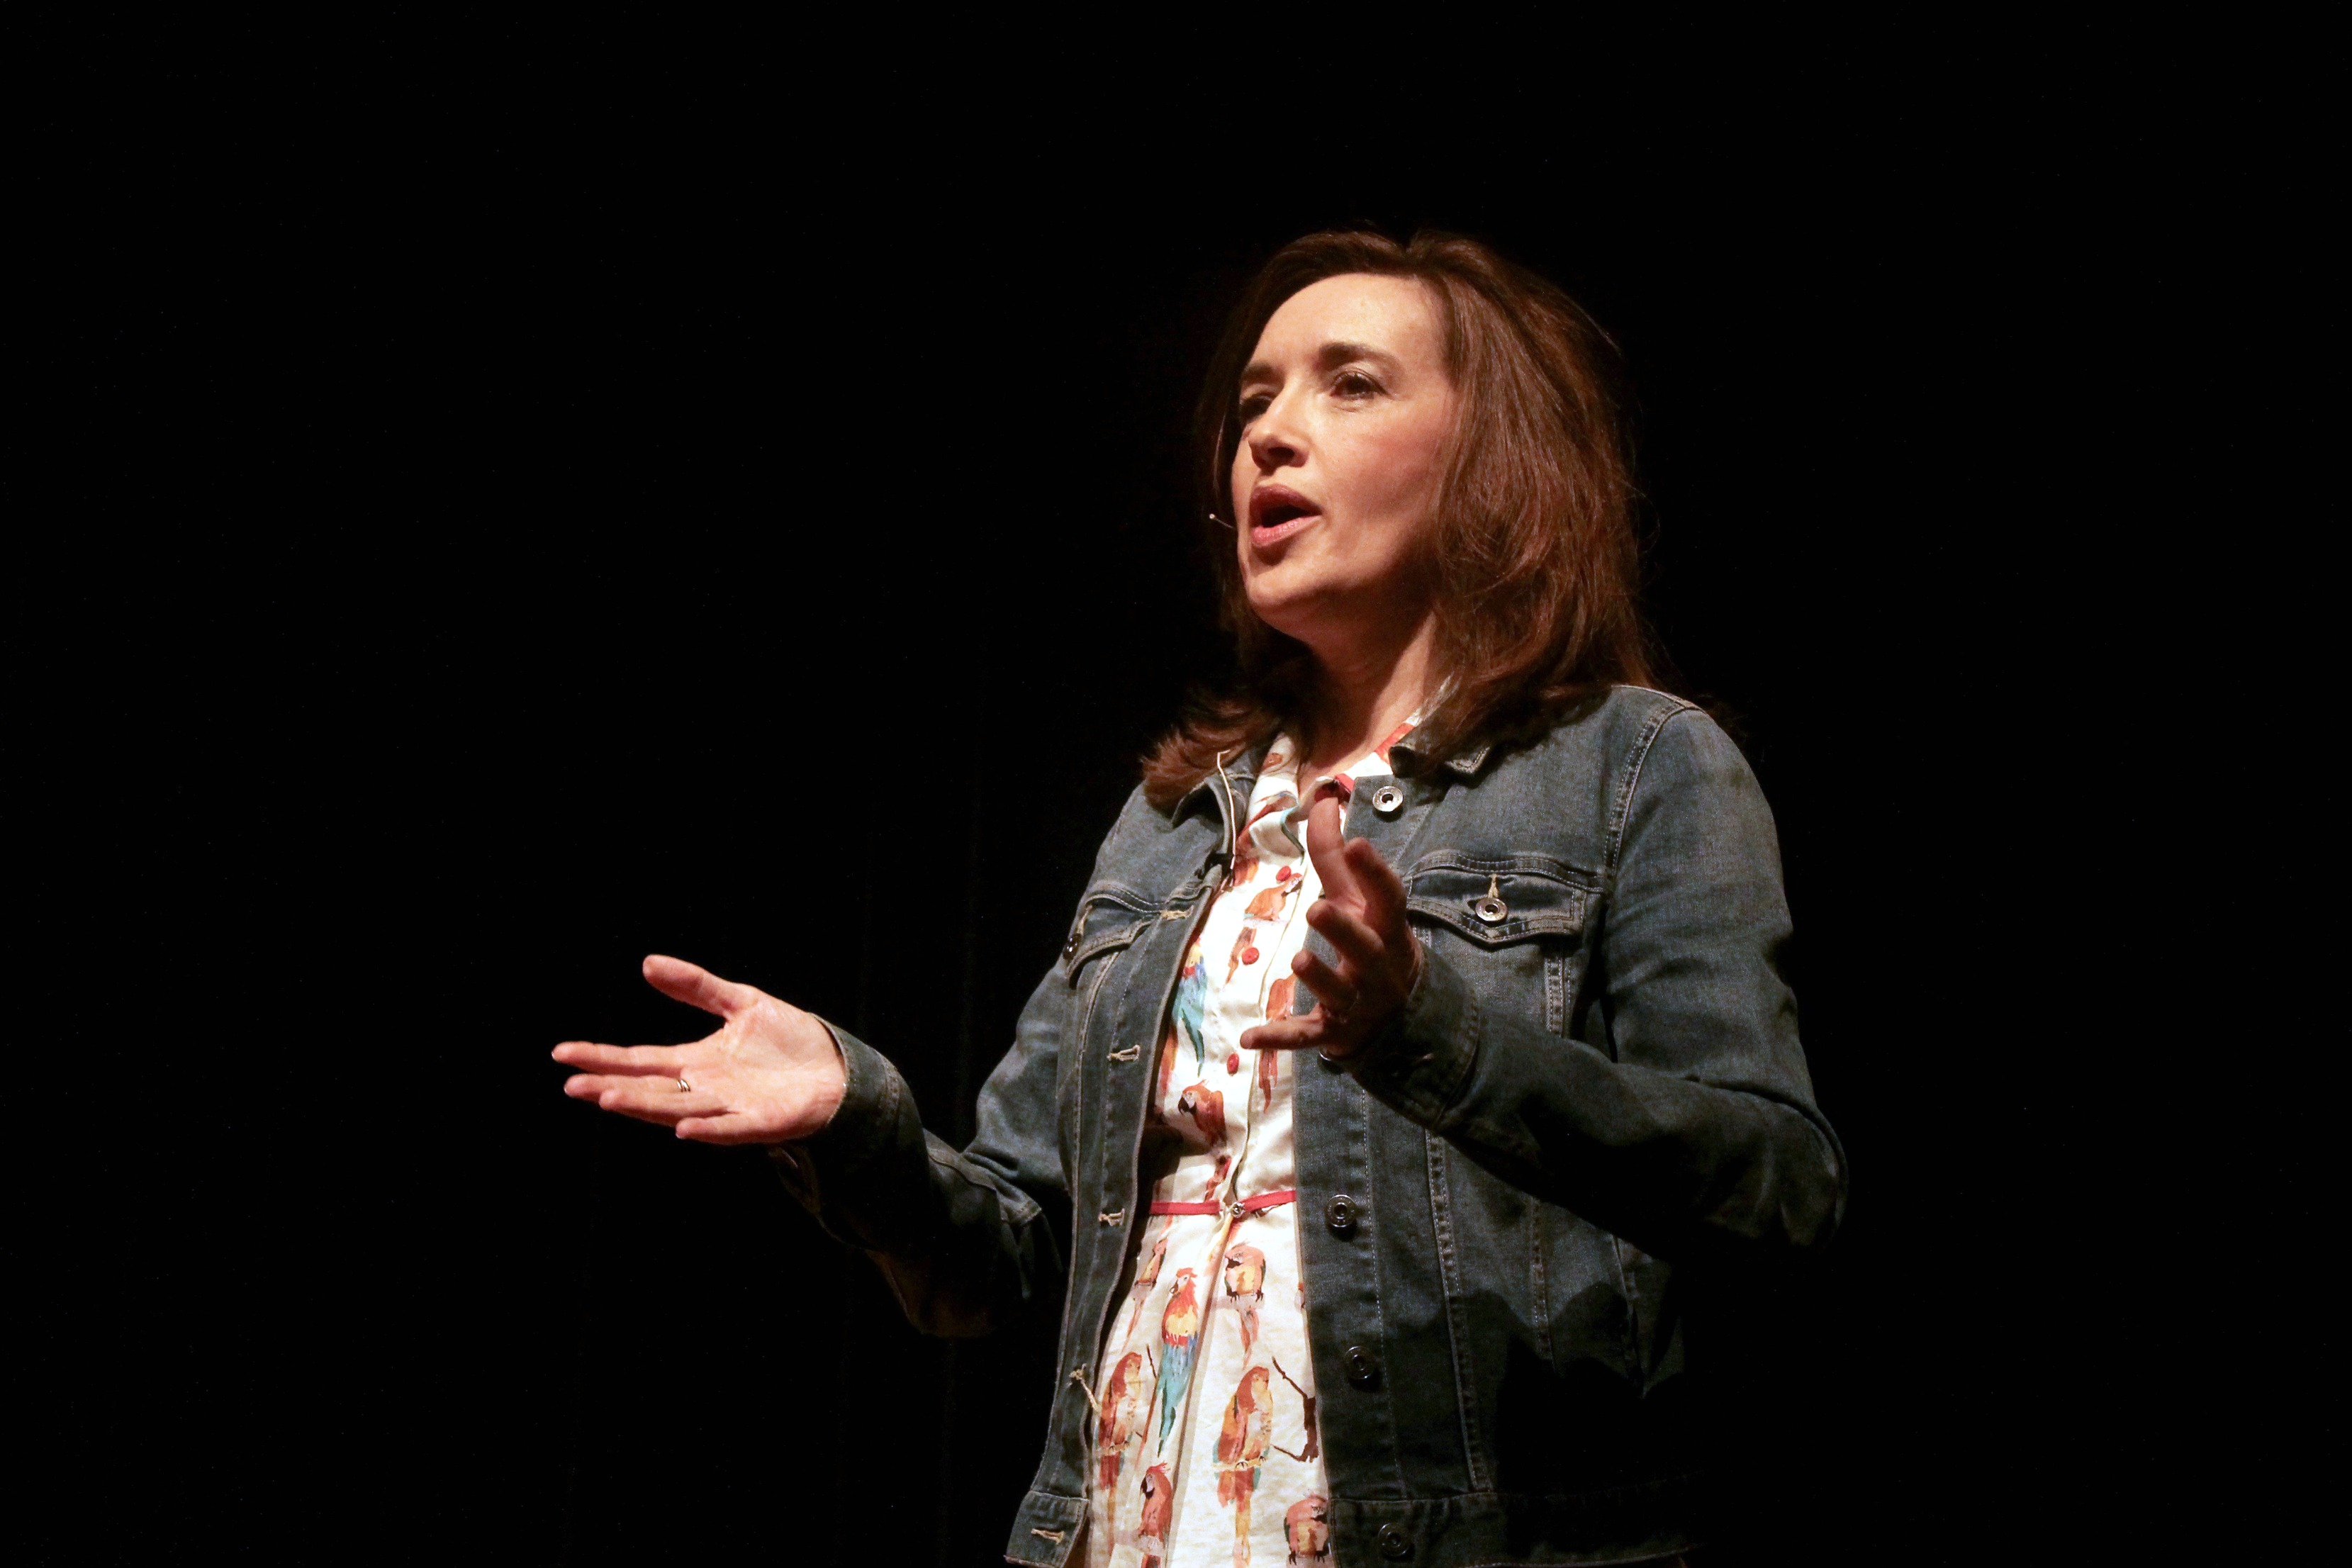 Sally Gary speaking in Hardeman Auditorium on March 23. Photo by Allyson Hazelrigg